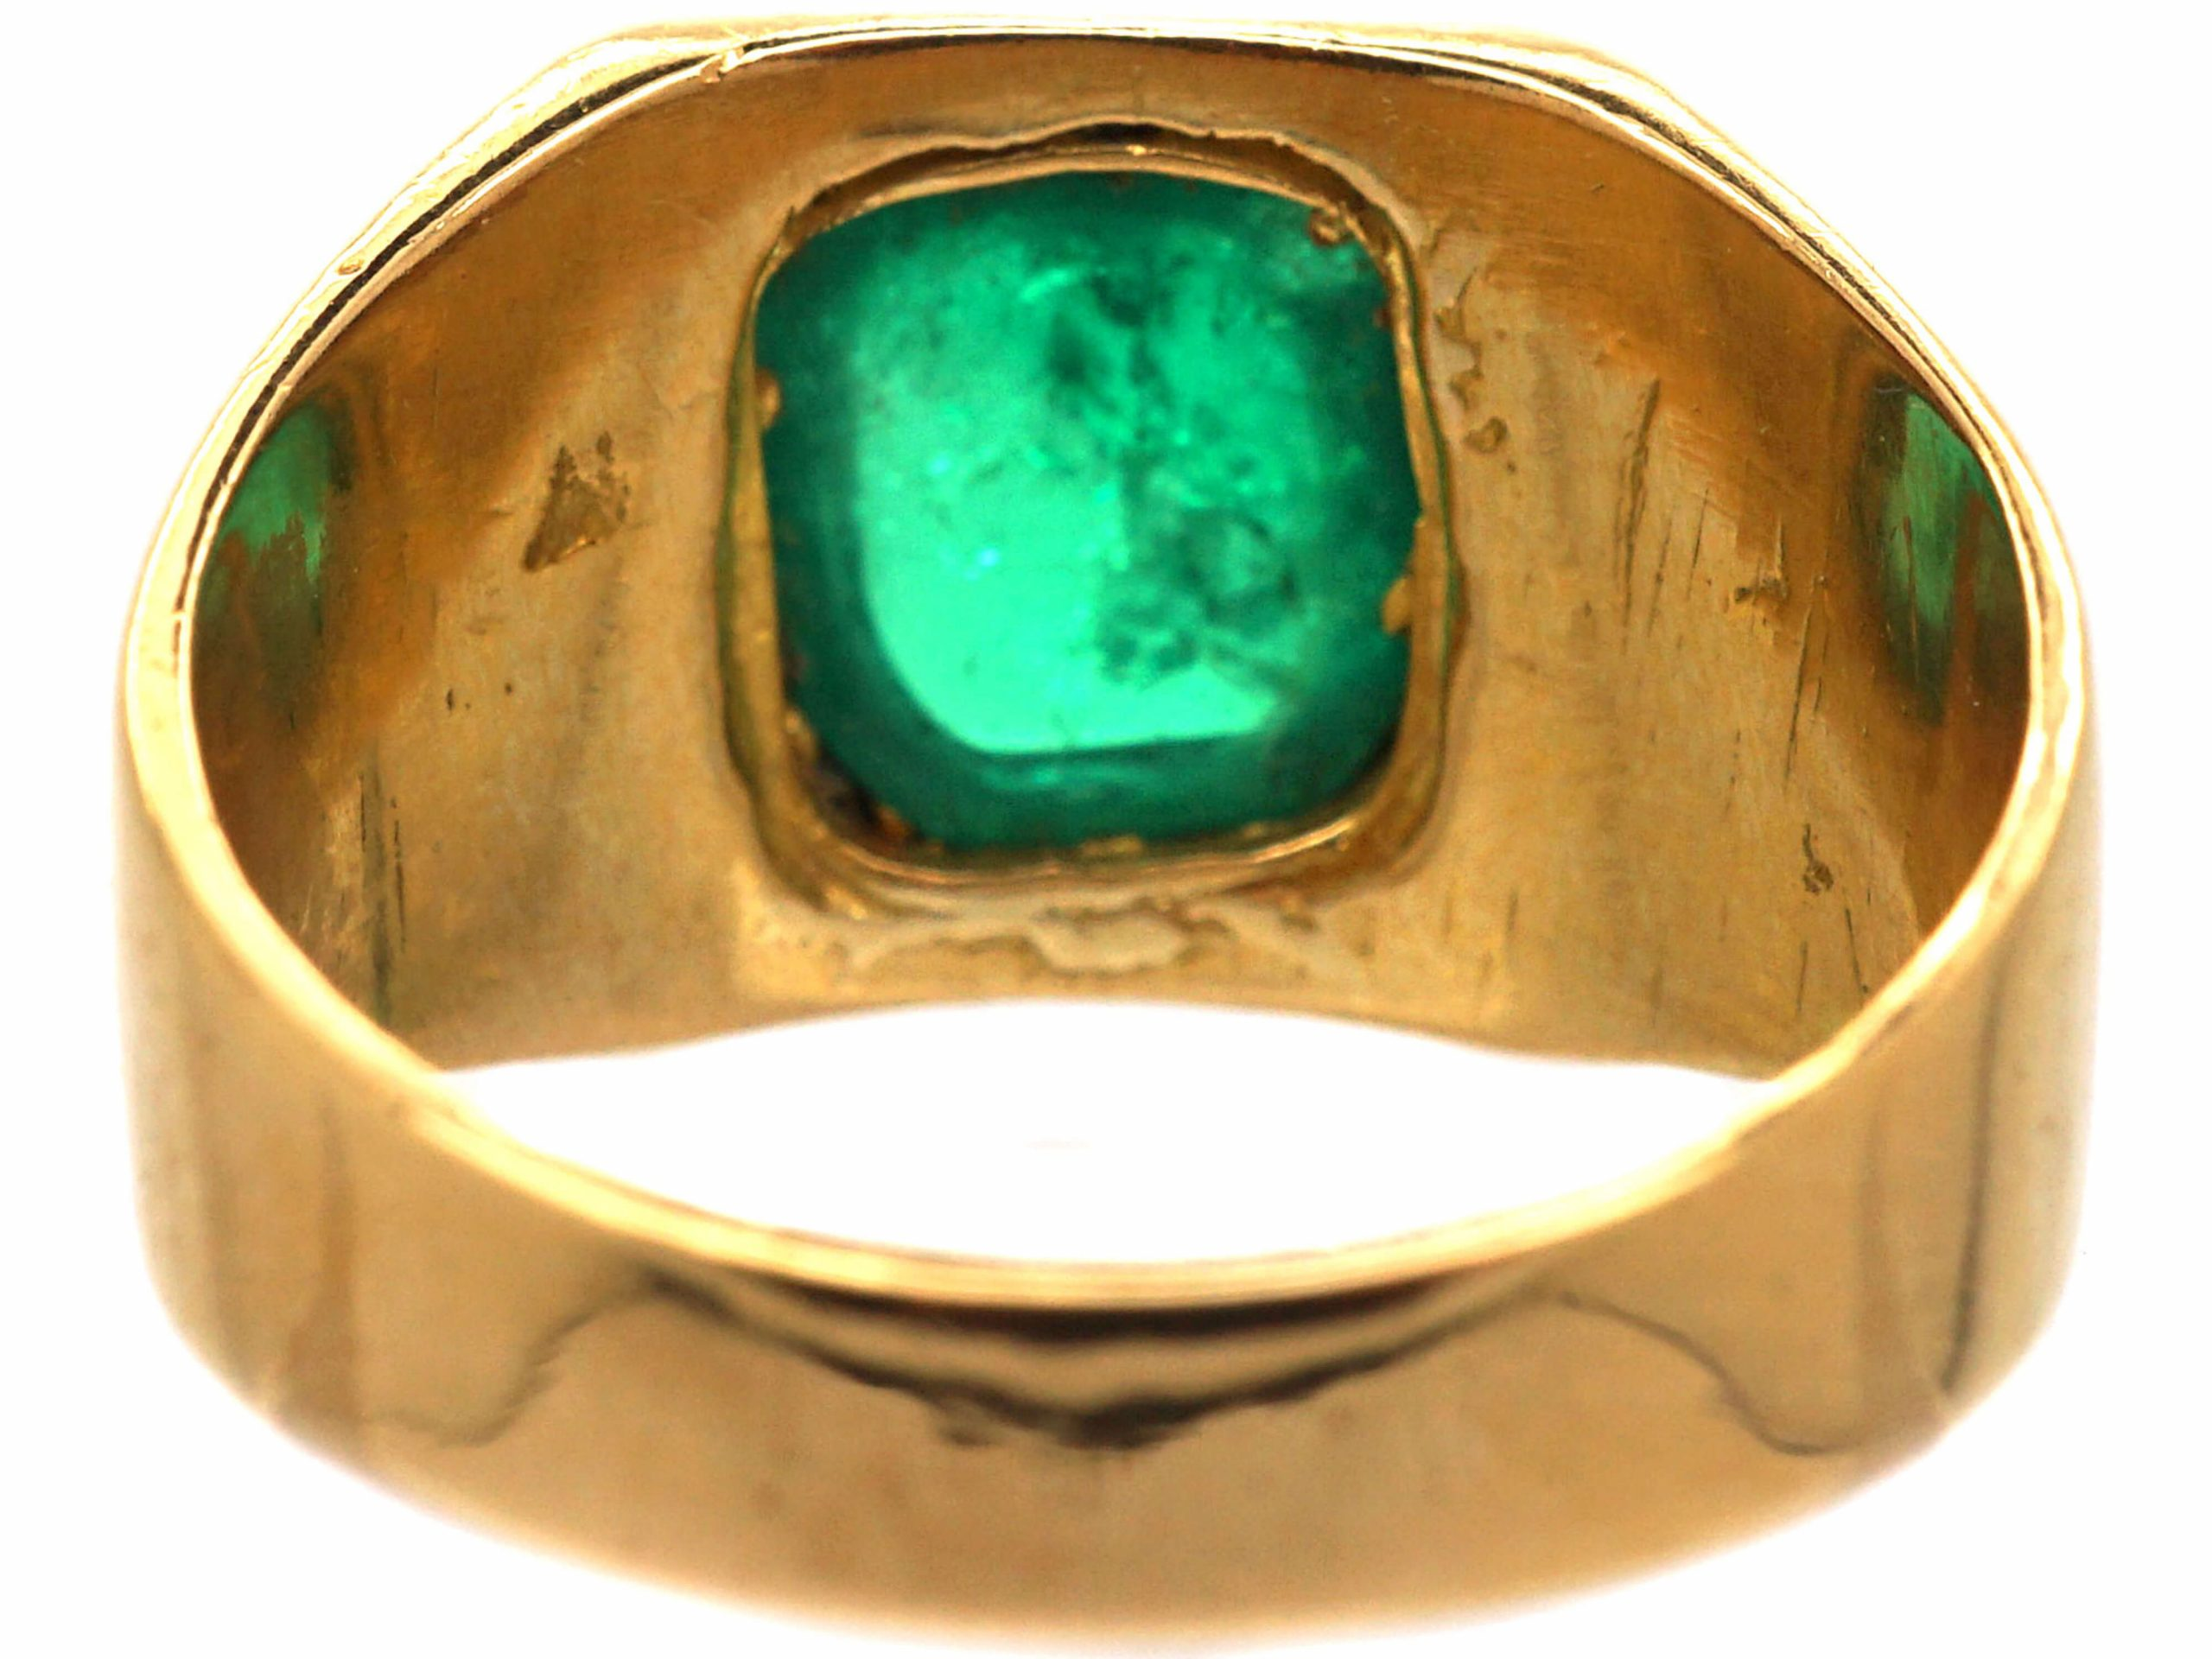 22ct Gold & Cabochon Emerald Ring